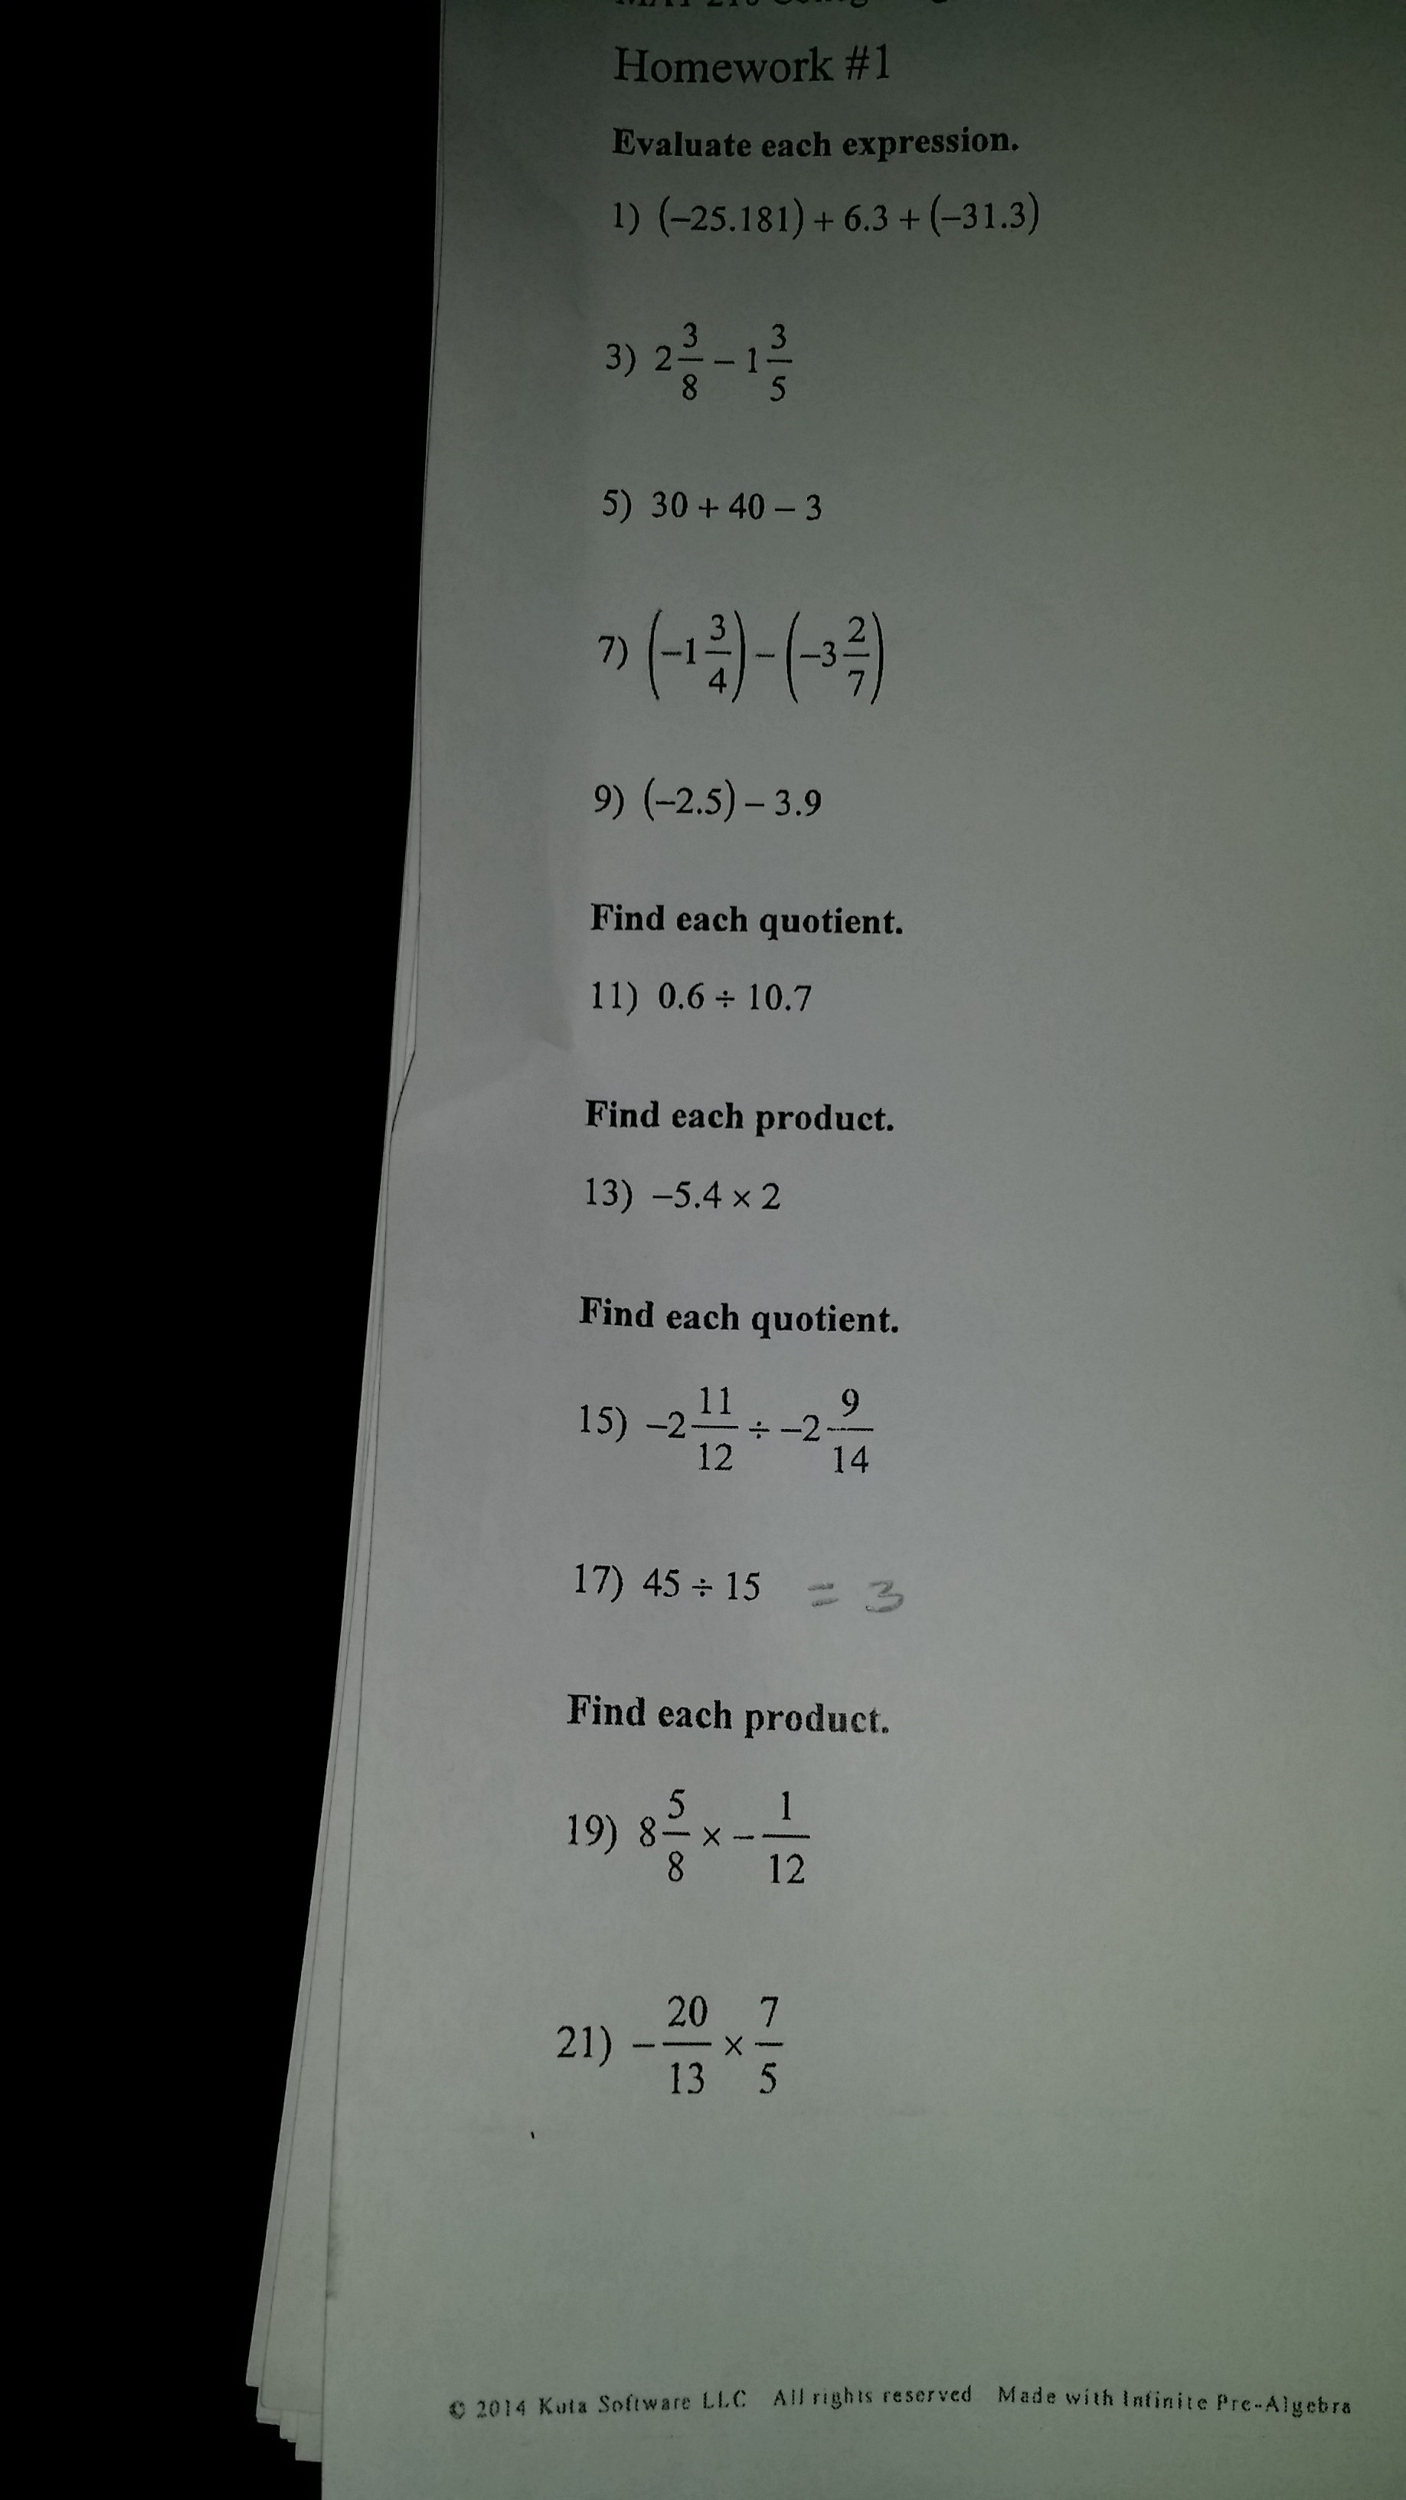 Related Questions